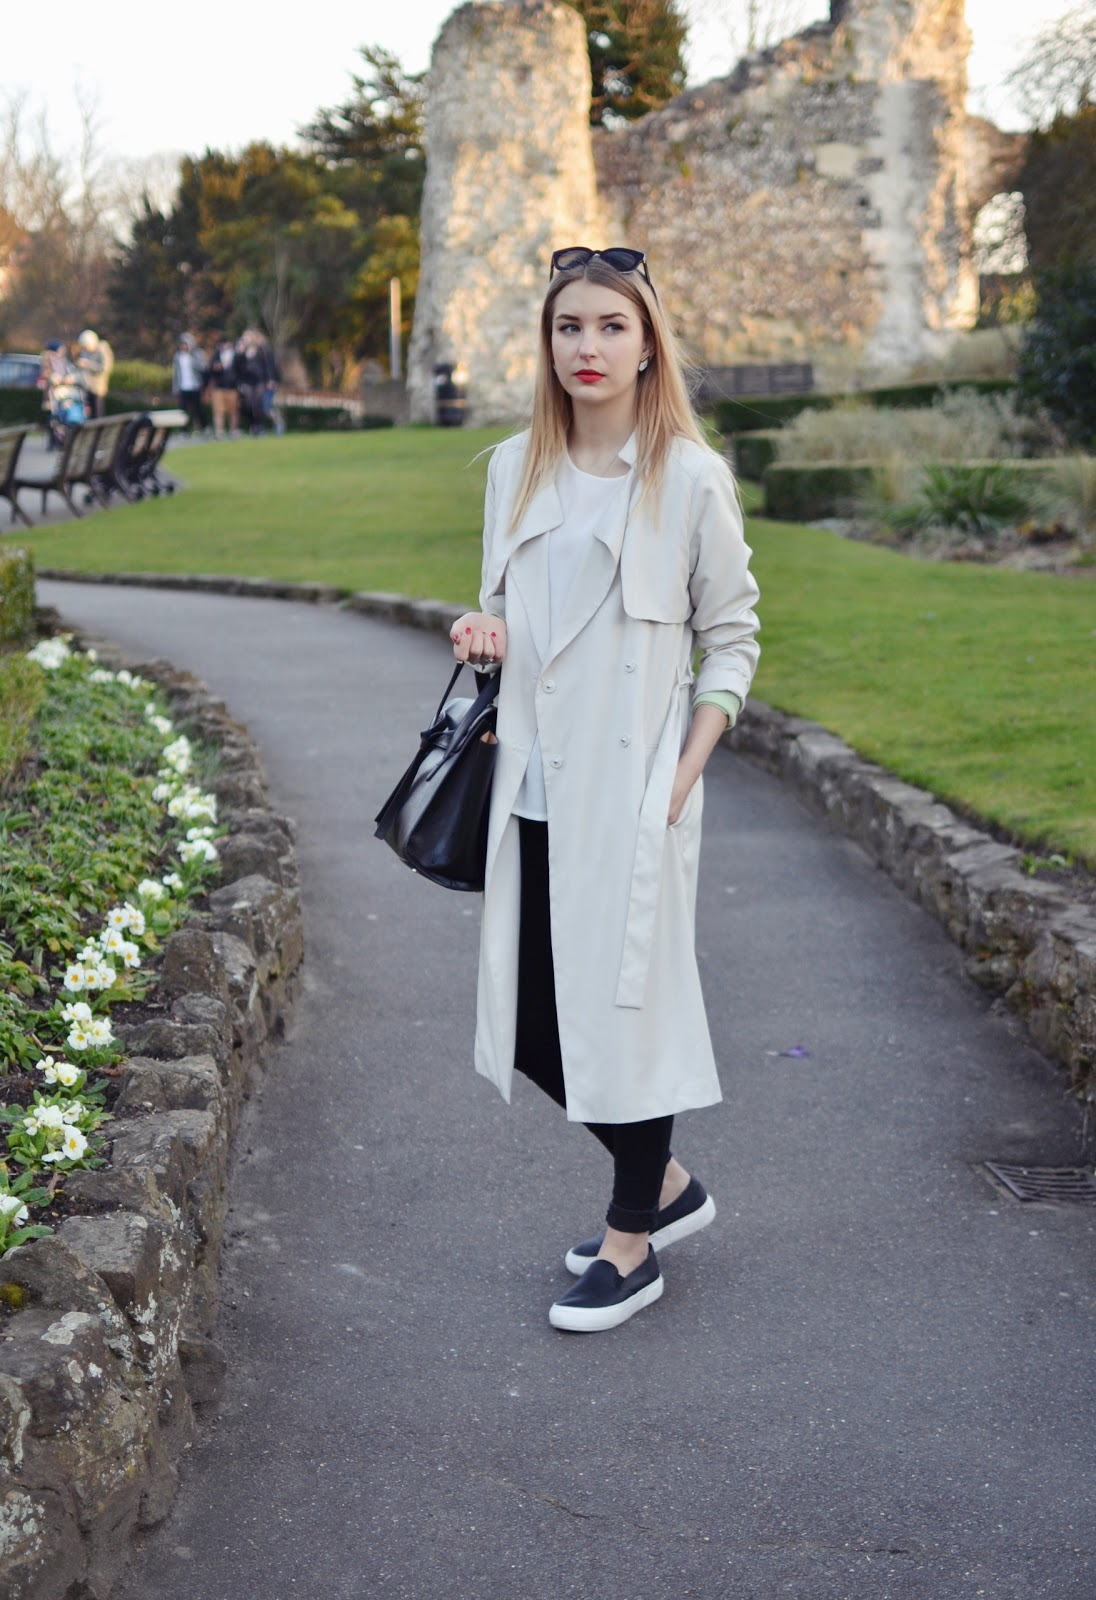 Guildford fashion & lifestyle blogger